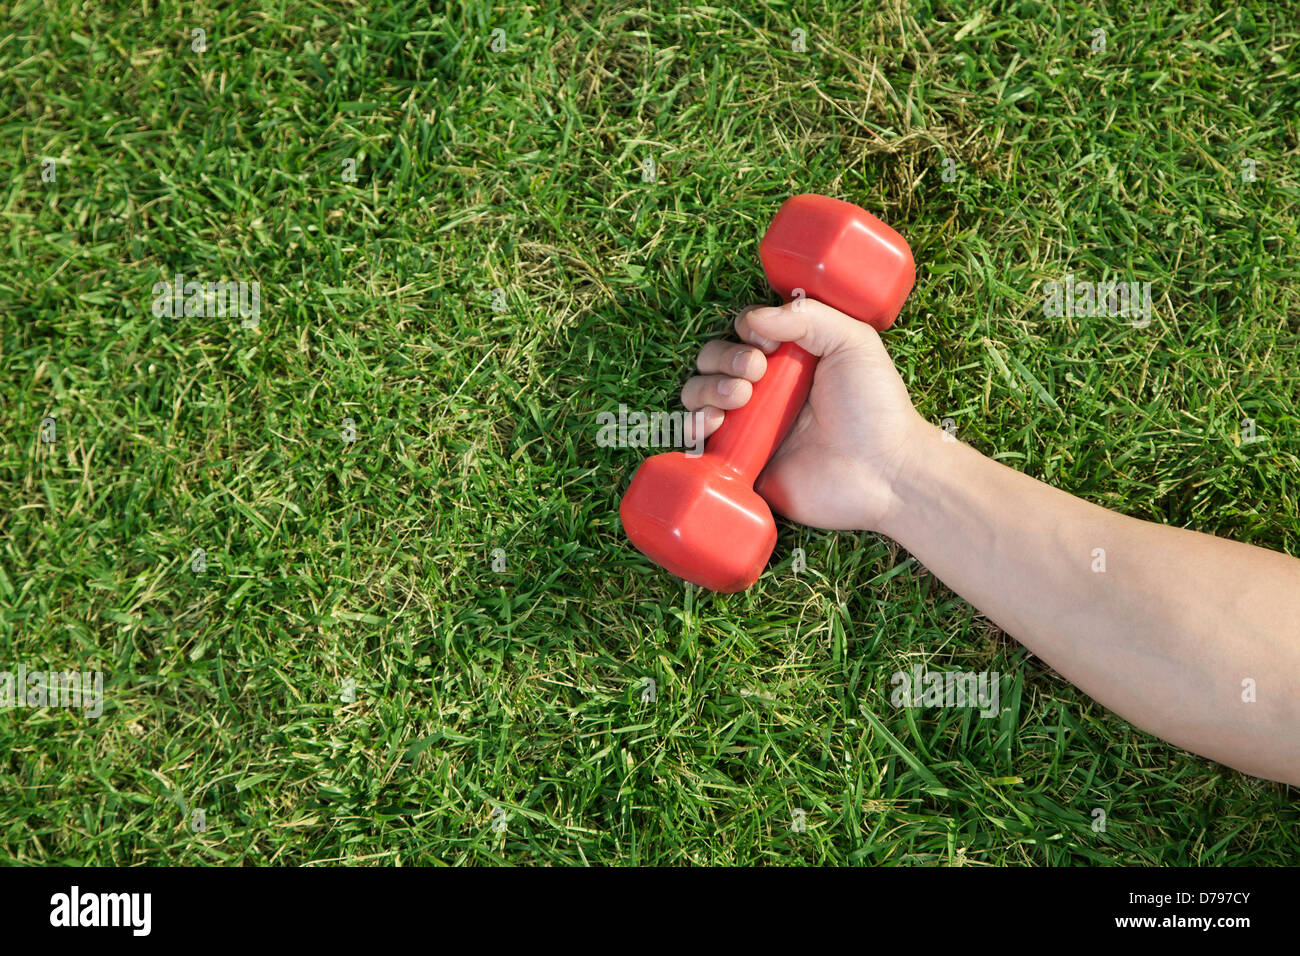 Close Up on Hand Holding Red Dumbbell in Grass - Stock Image